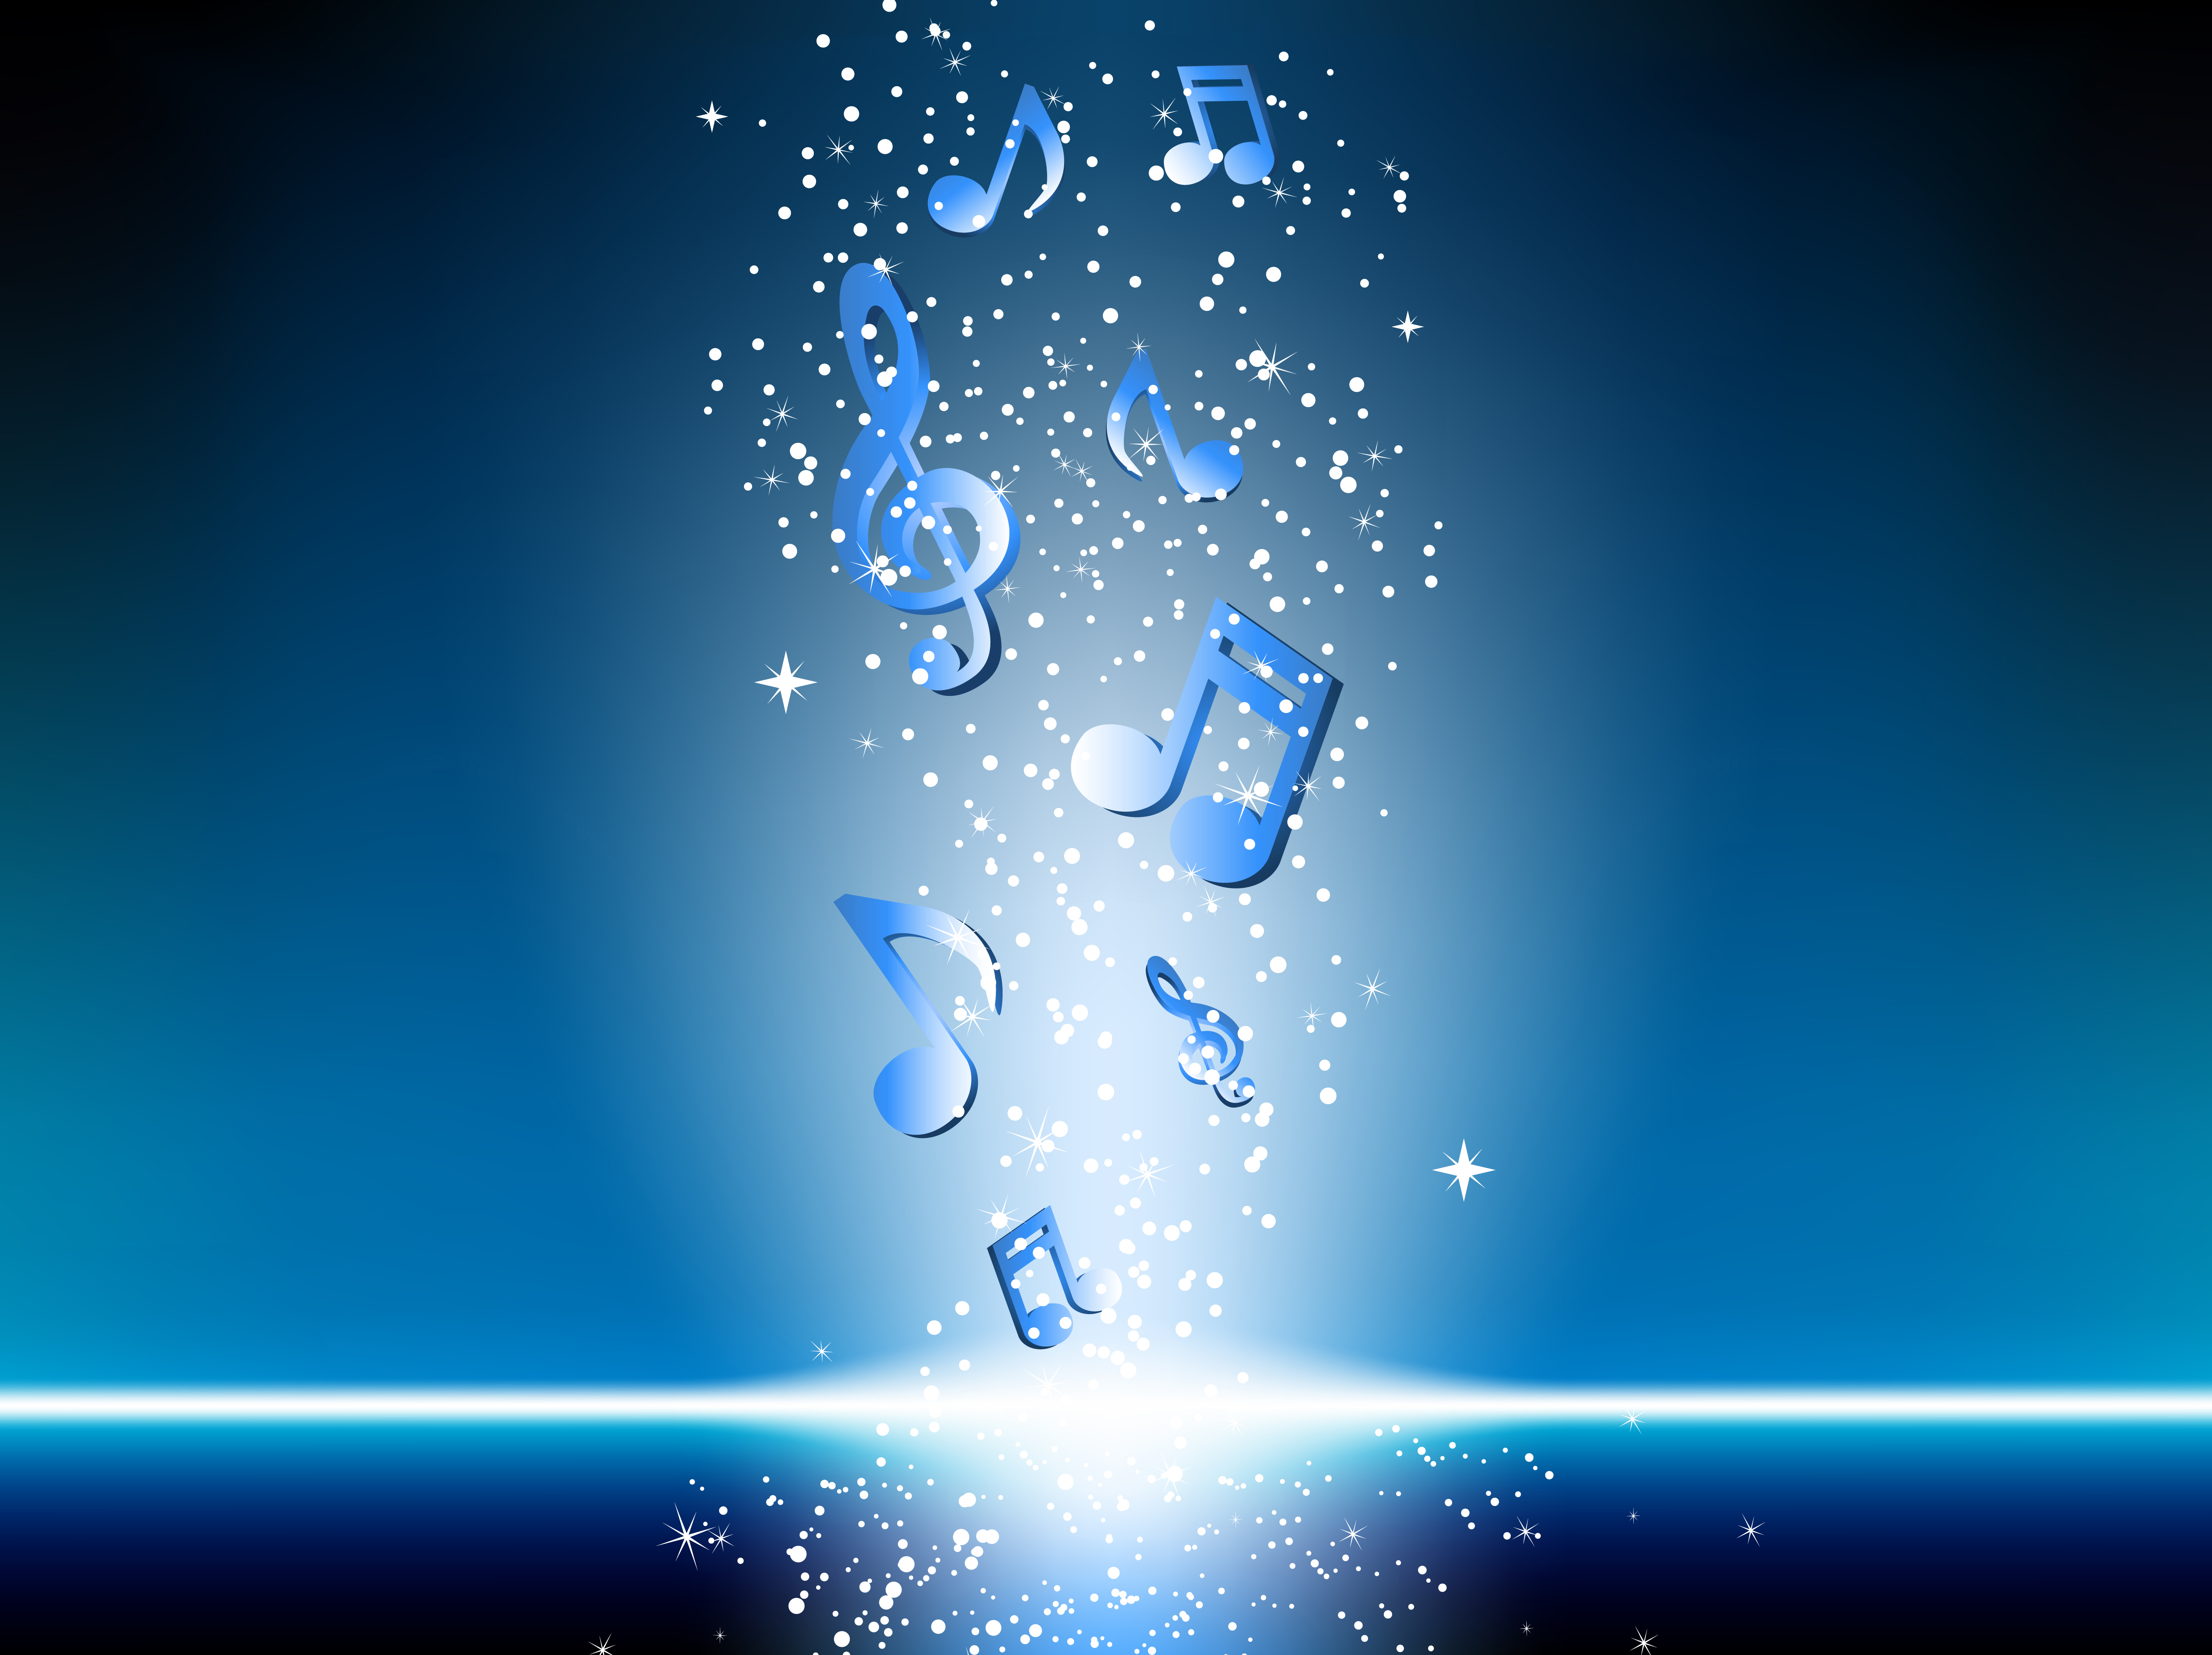 Blue background with music notes and stars. Editable Vector Image